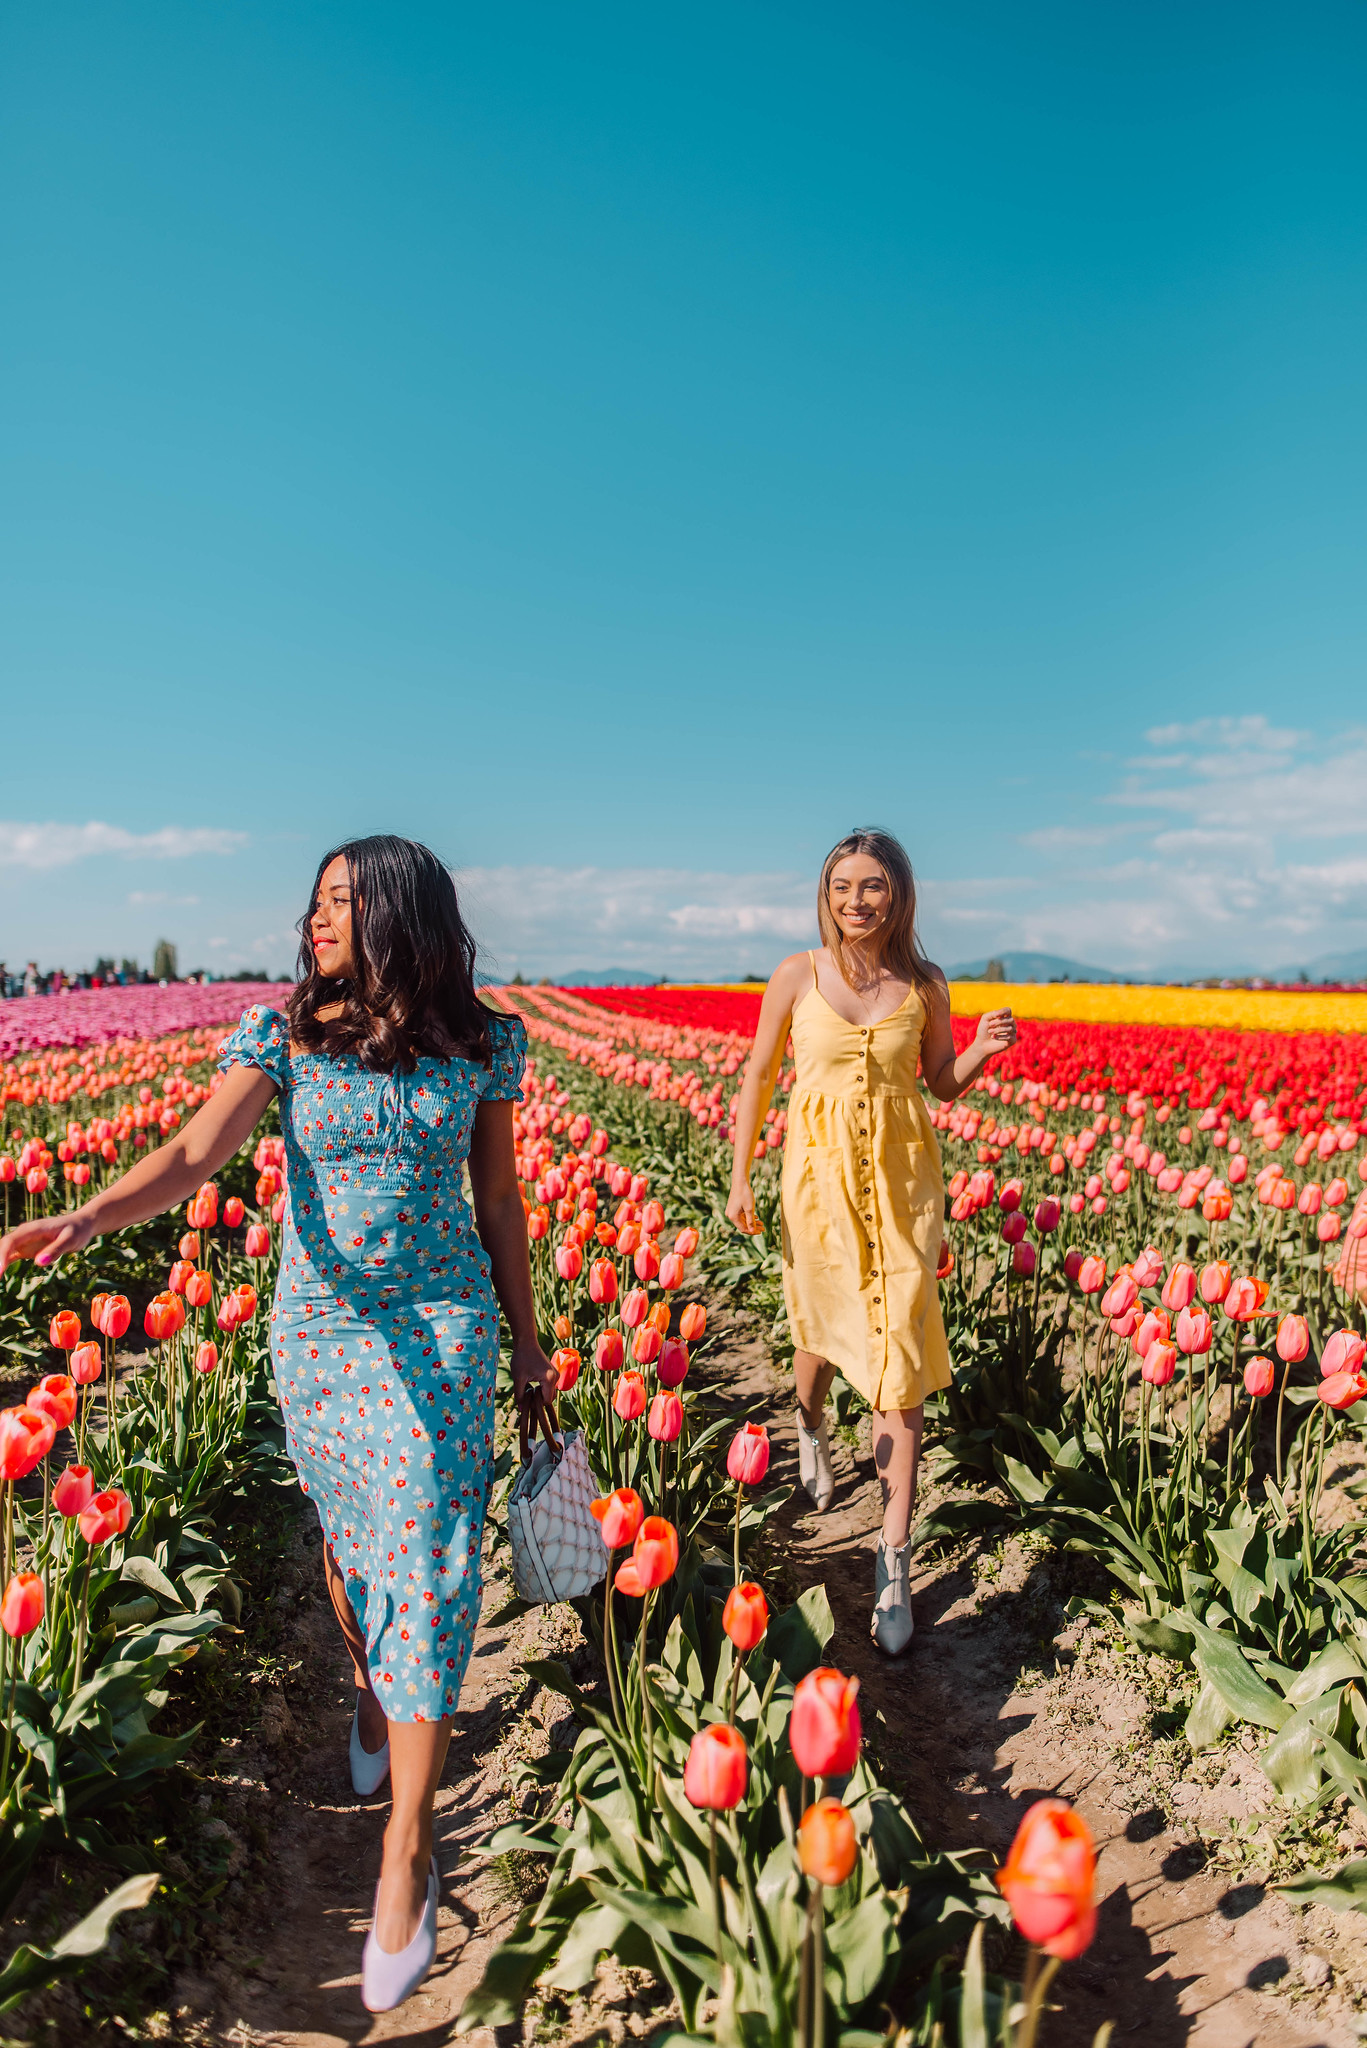 walk ahead of your friend - flower field photography ideas